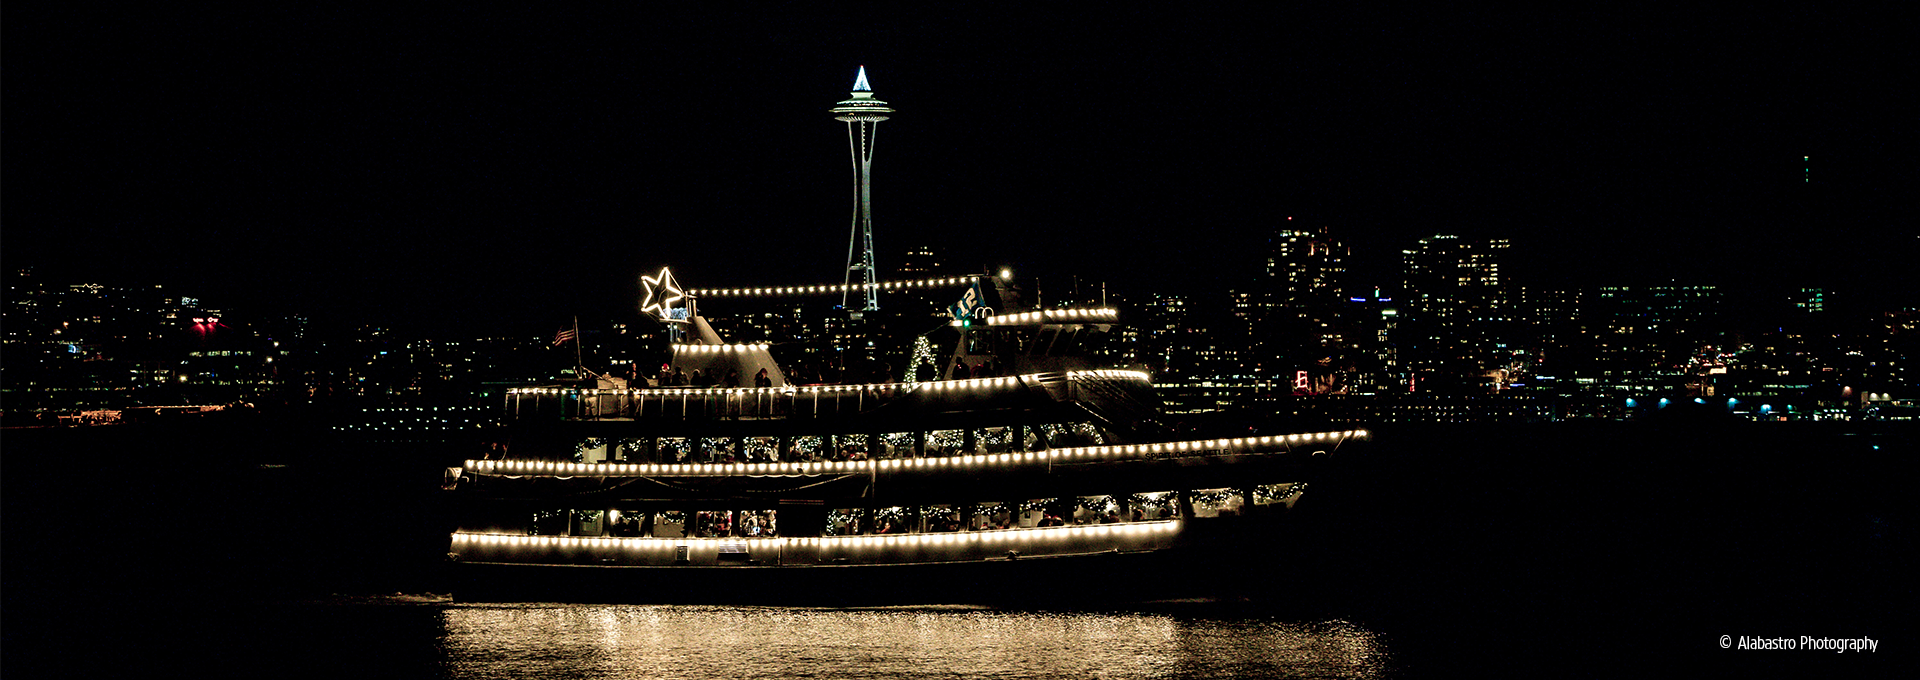 2020 Seattle Christmas Cruise Schedule Christmas Ship™ Festival Schedule | Argosy Cruises